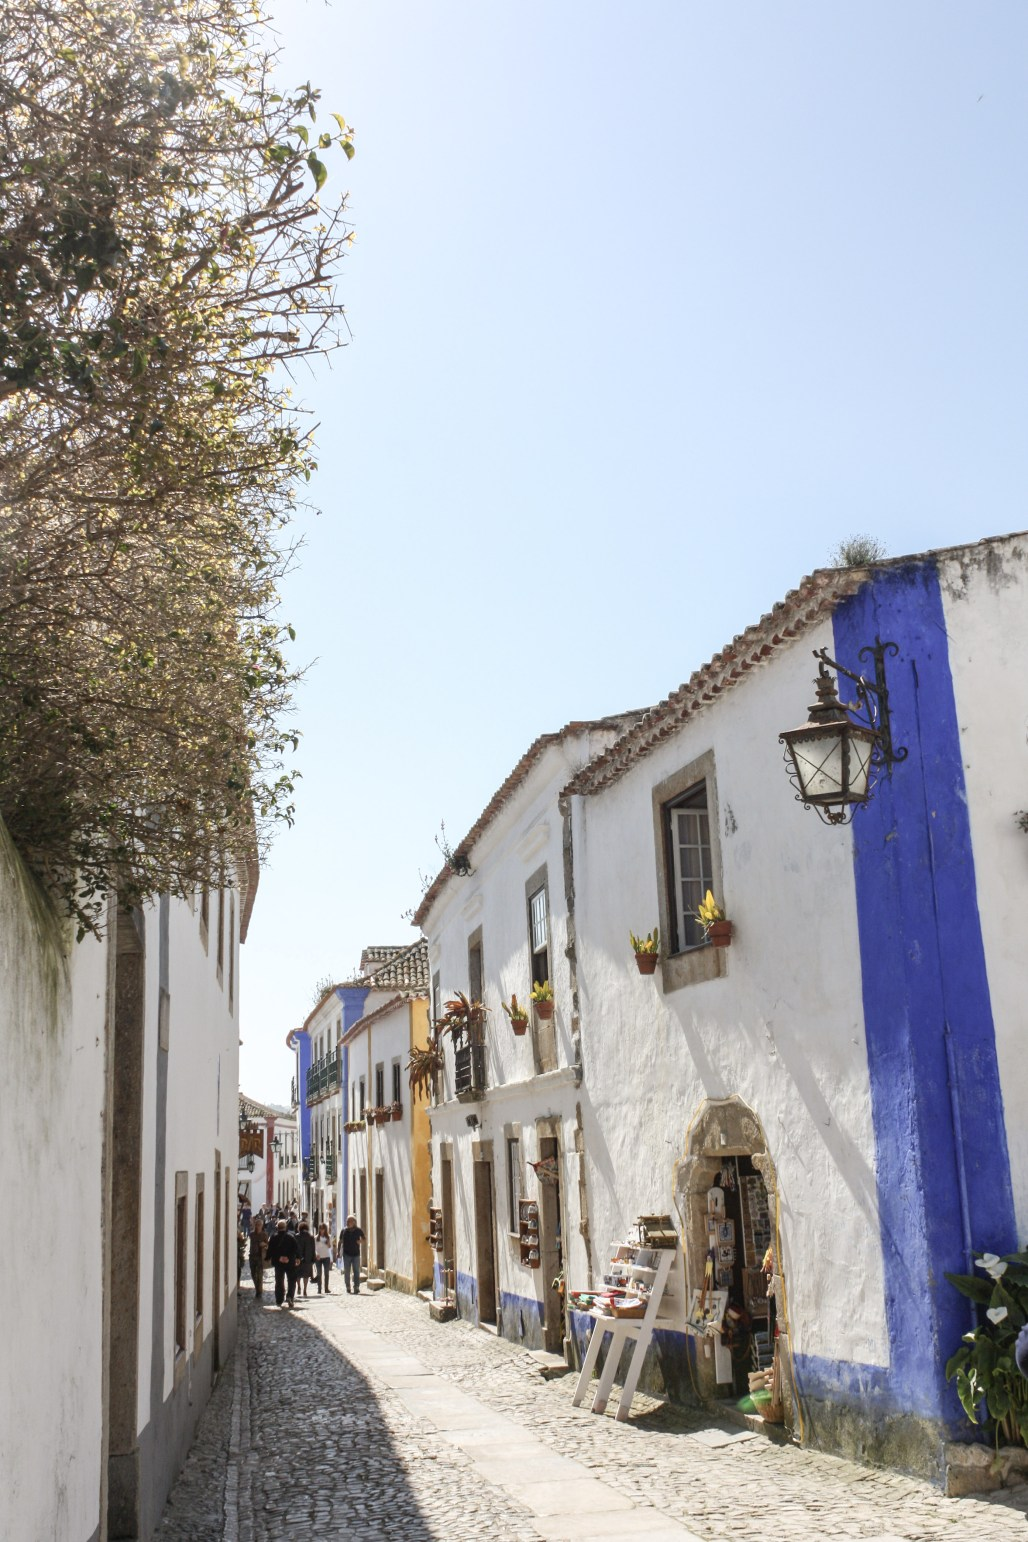 Medieval Castle Walls with Cobblestone Alleyways Marked of Culture & History    Óbidos, Portugal    Dreamery Events